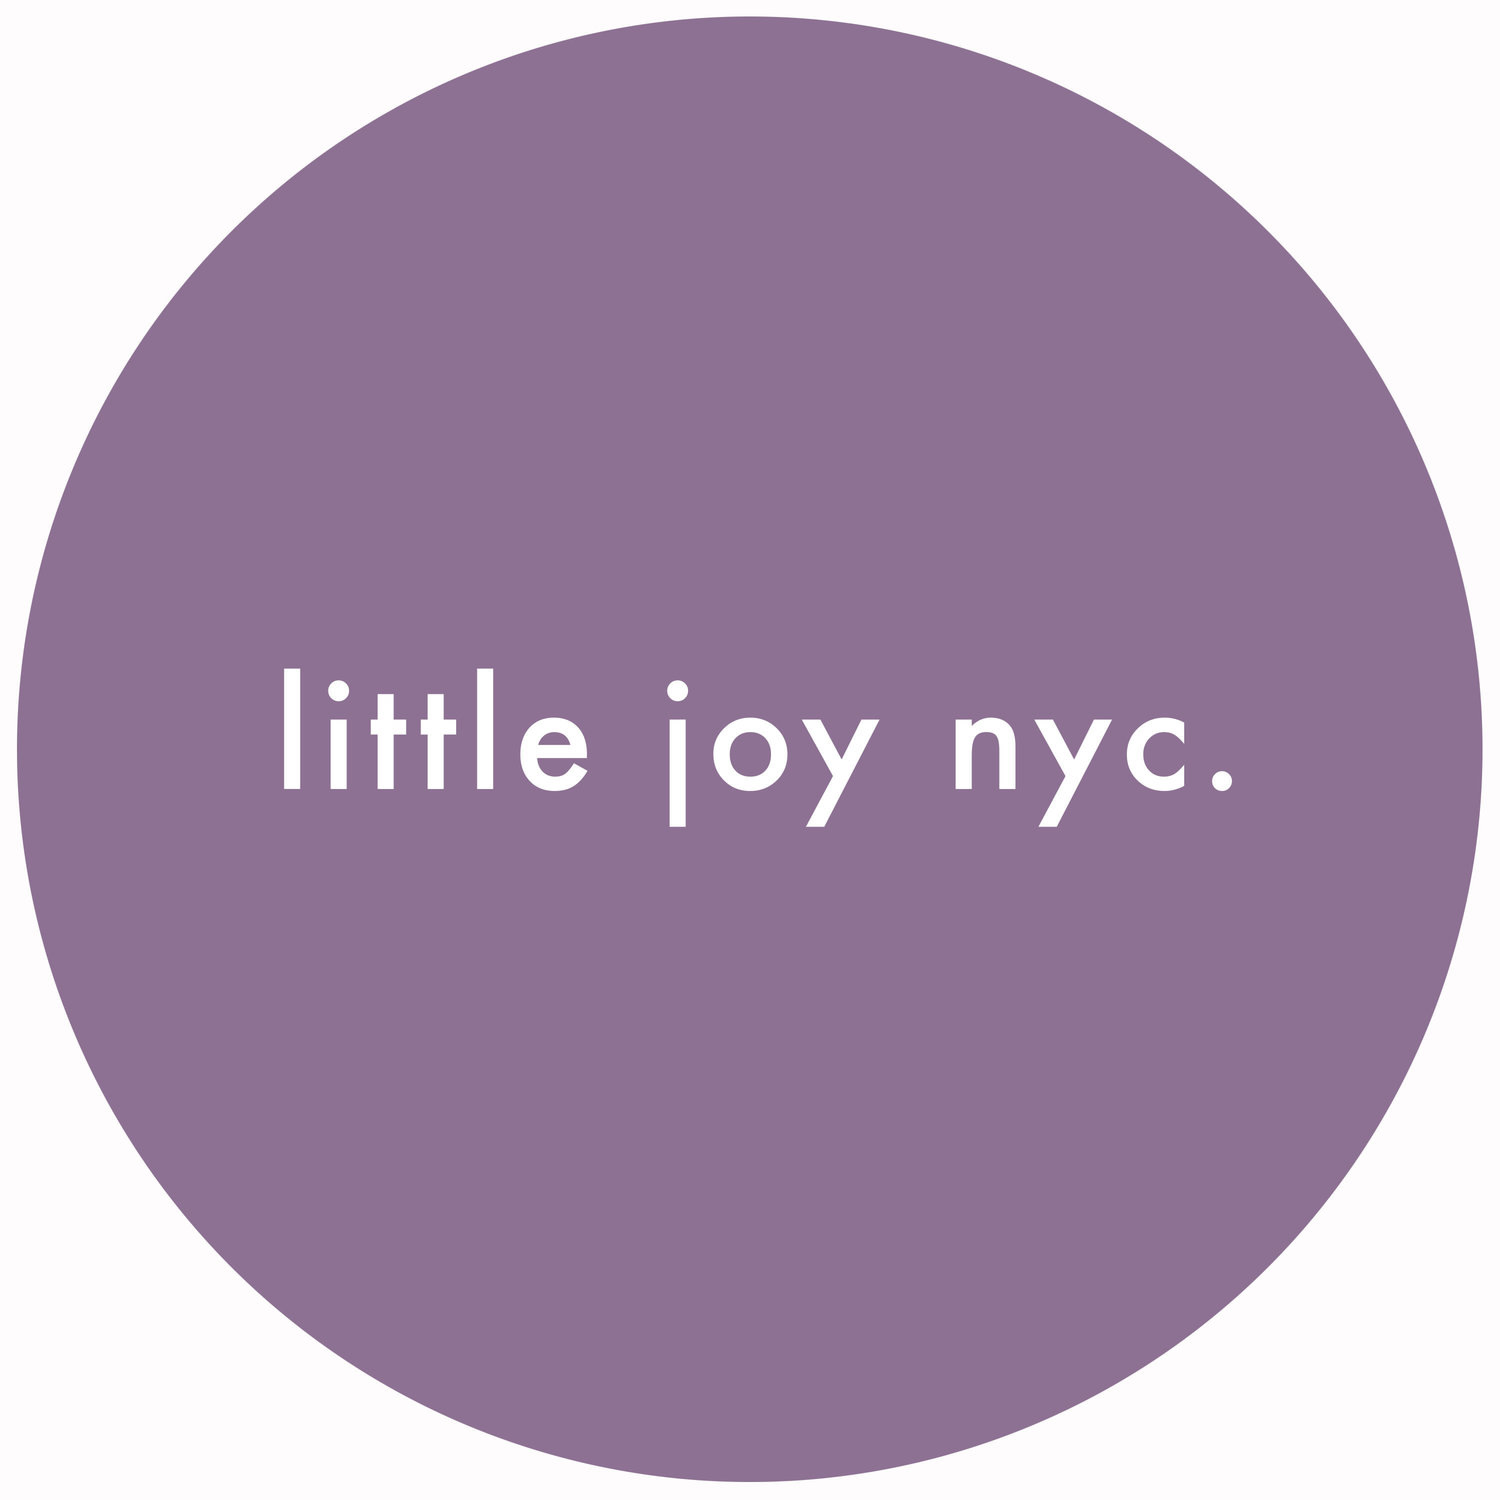 little joy nyc.